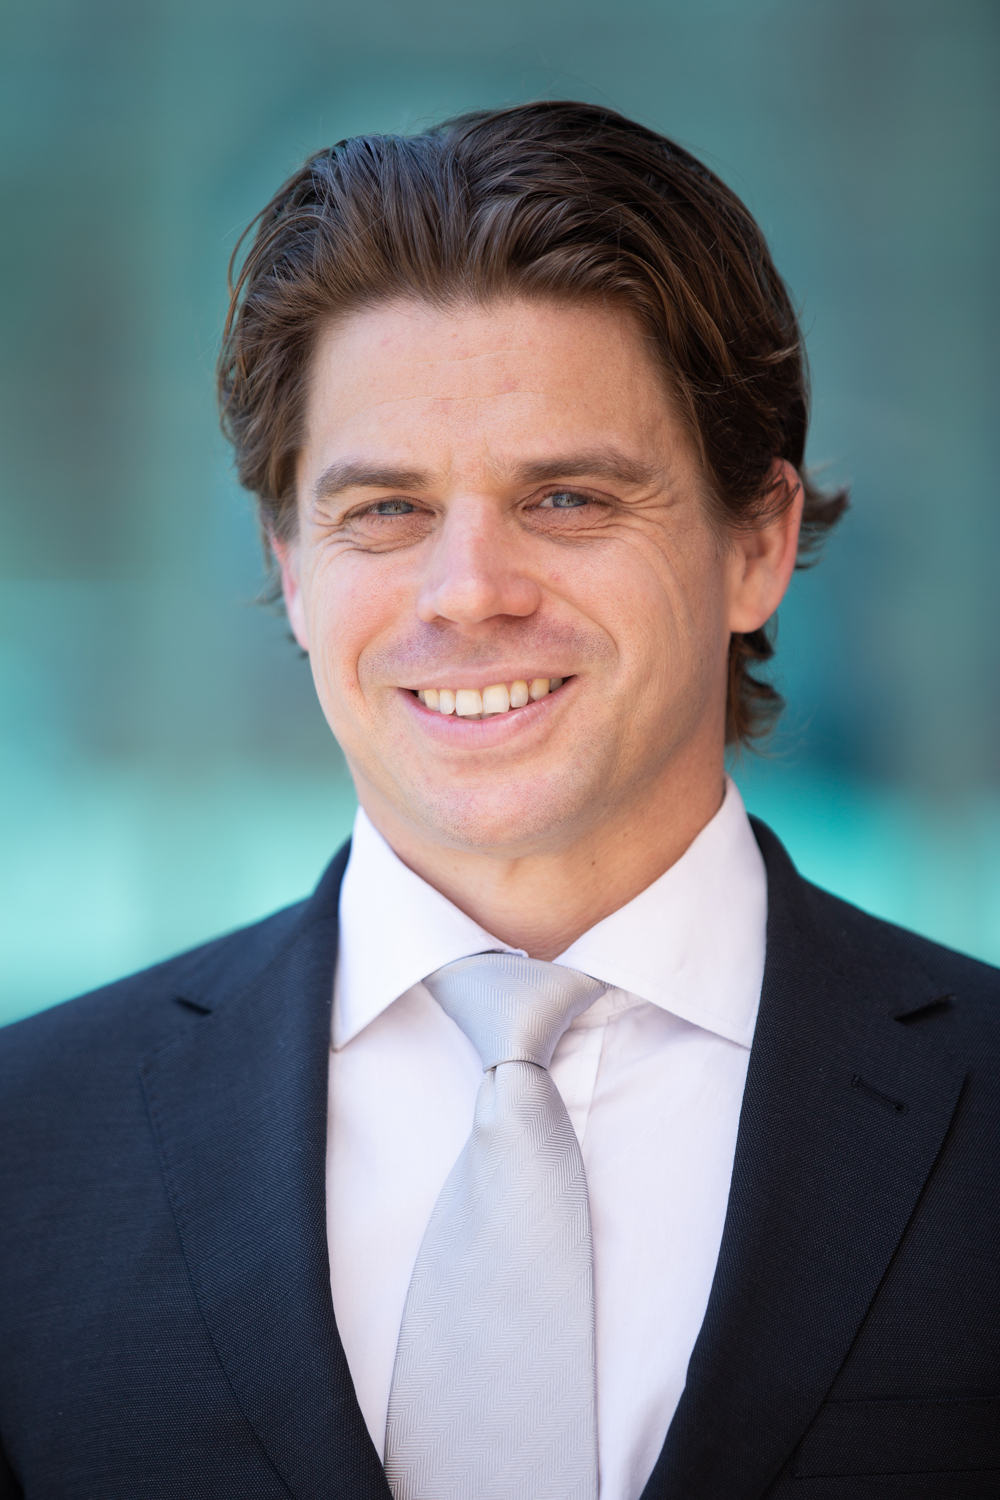 Business Head Shot Brisbane